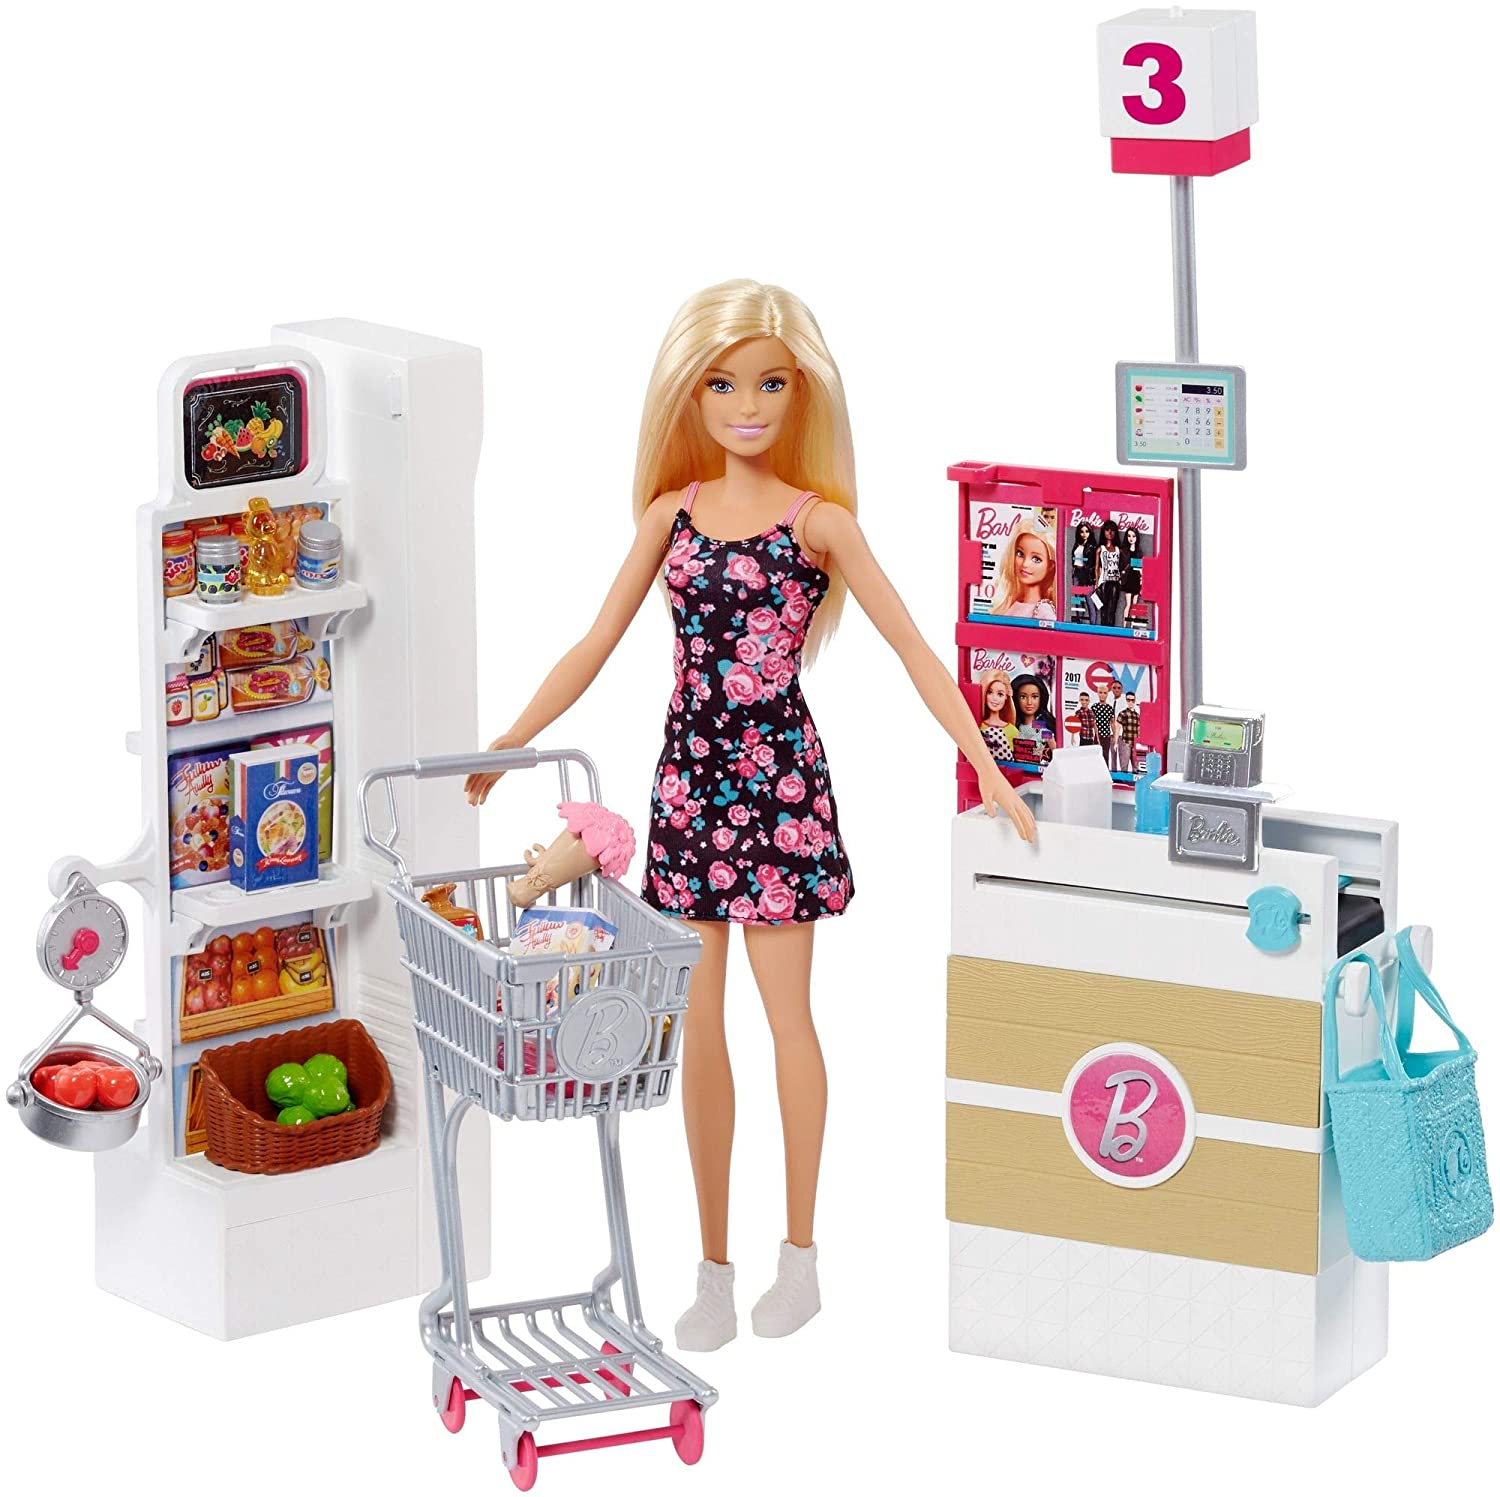 Barbie Supermarket Set, Blonde